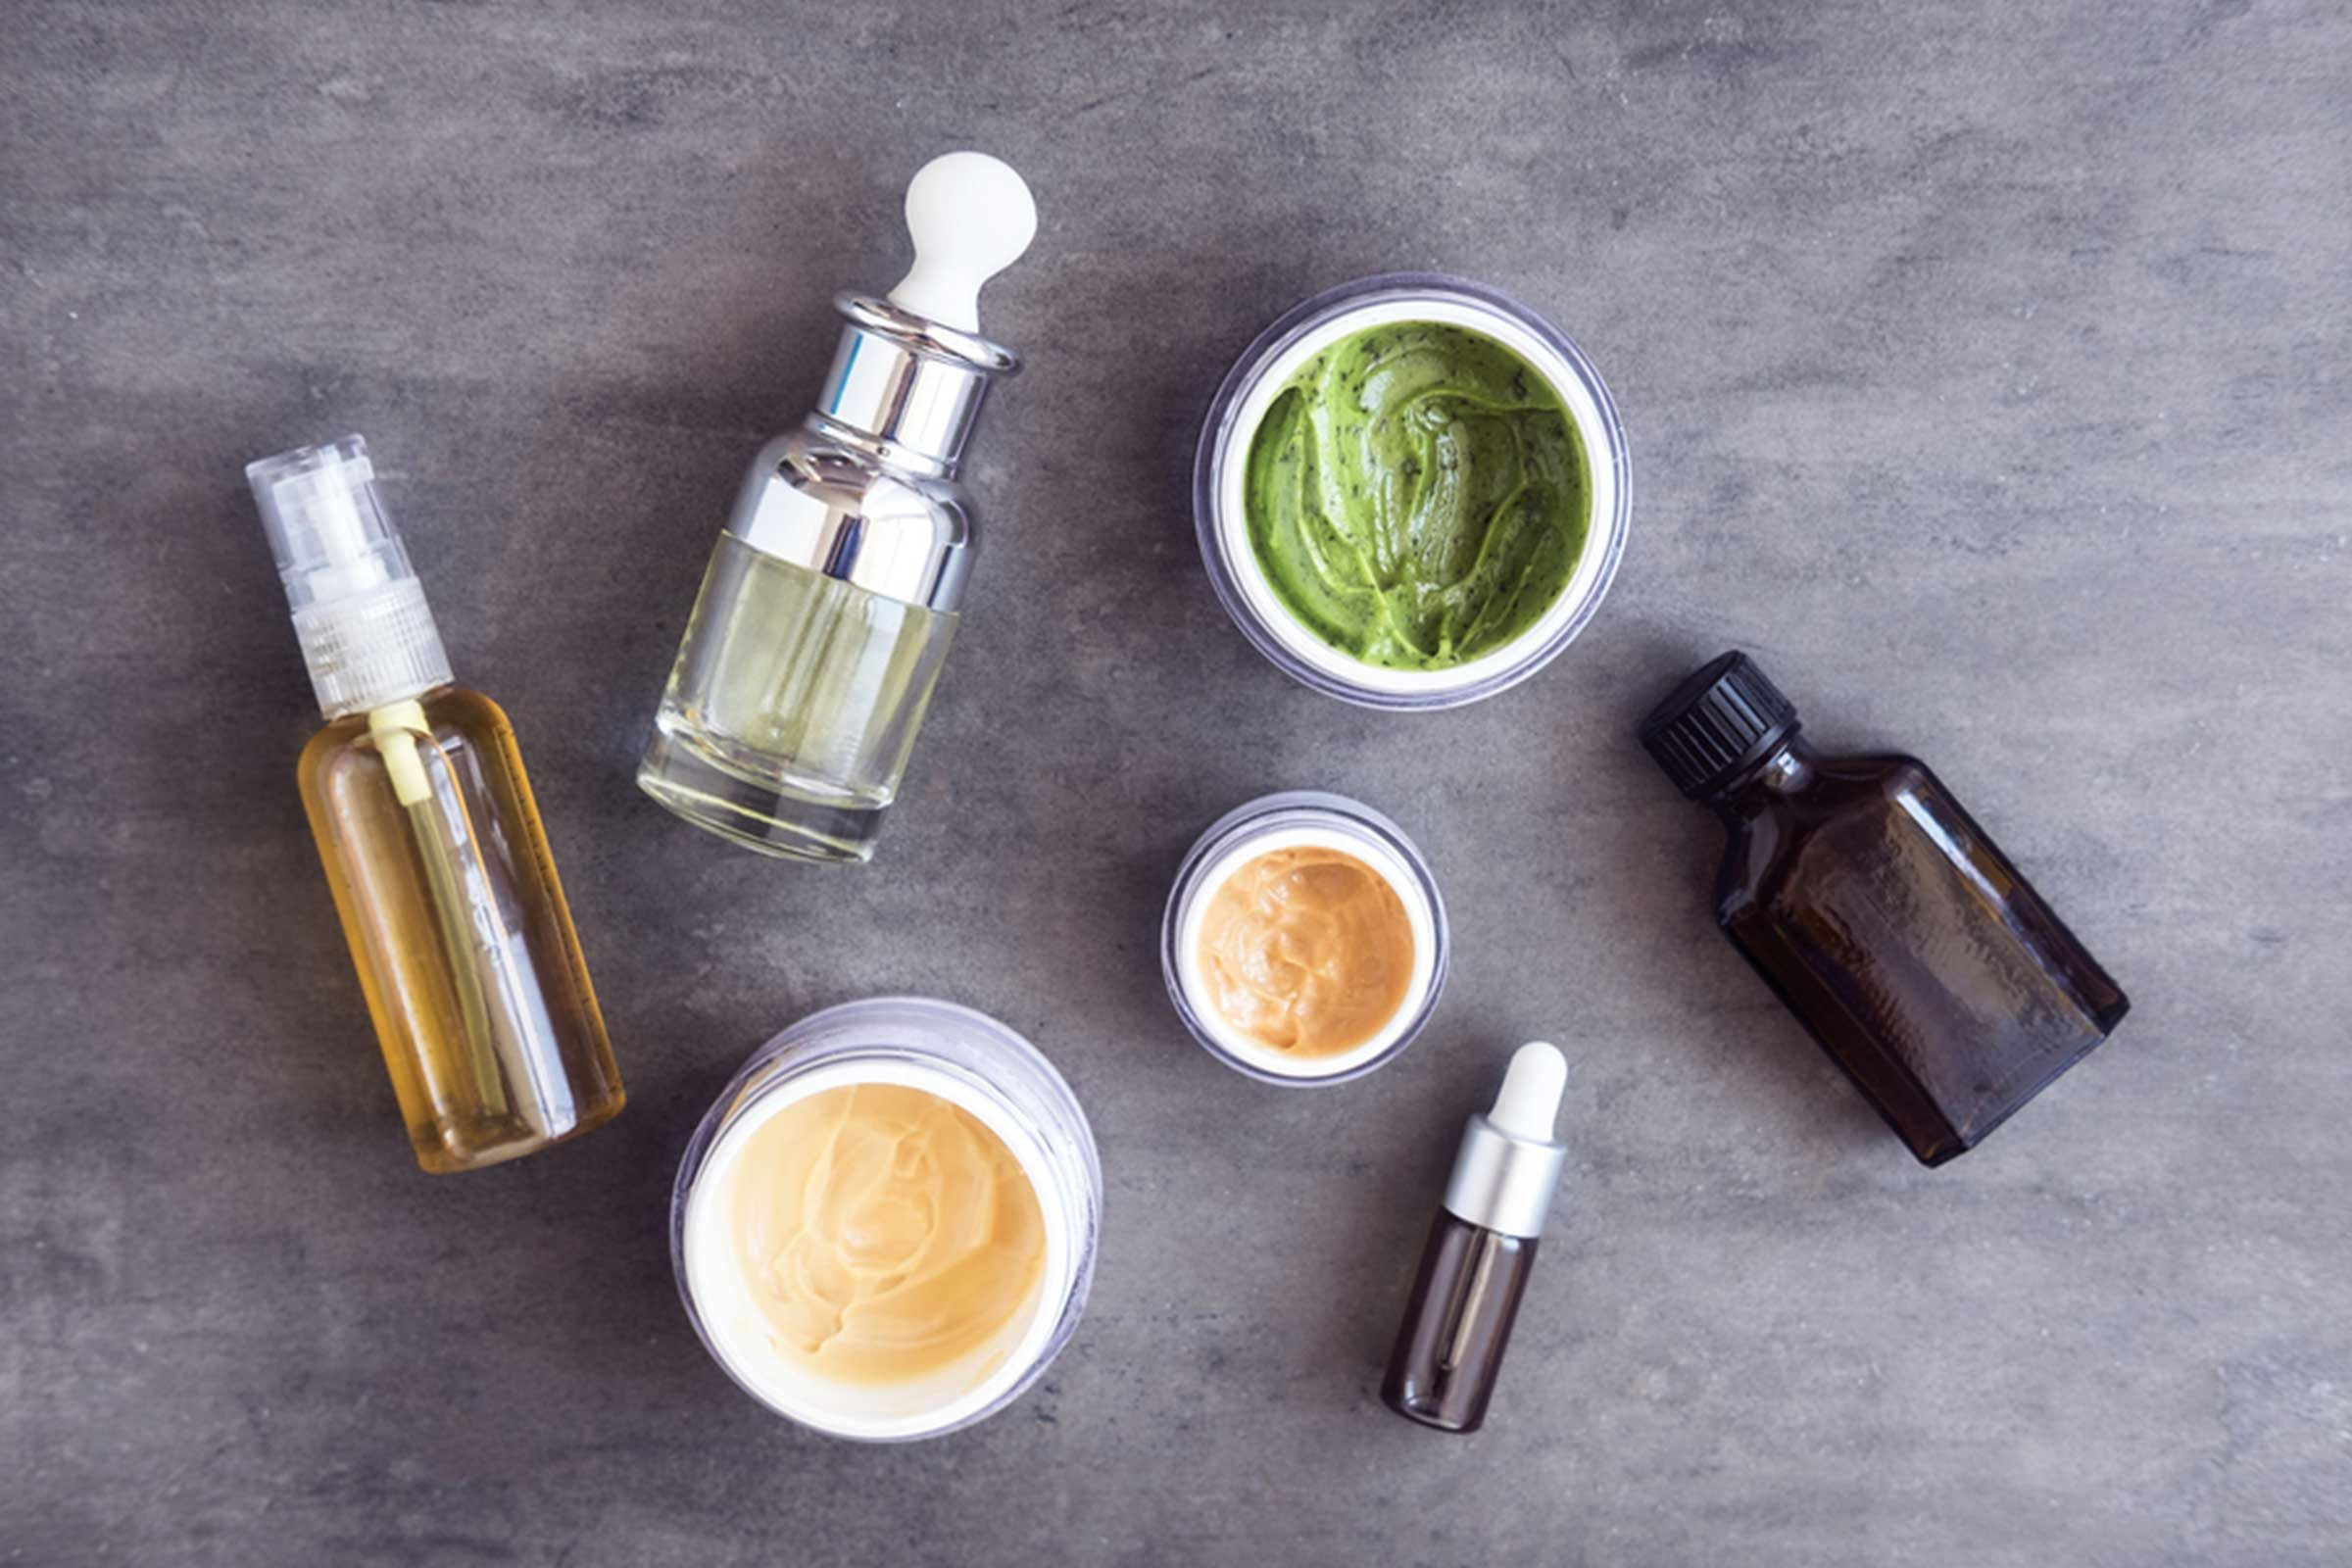 11-expired-Things-You-Must-Never-Ever-Do-to-Your-Skin,-According-to-Dermatologists_659319469-July-Prokopiv